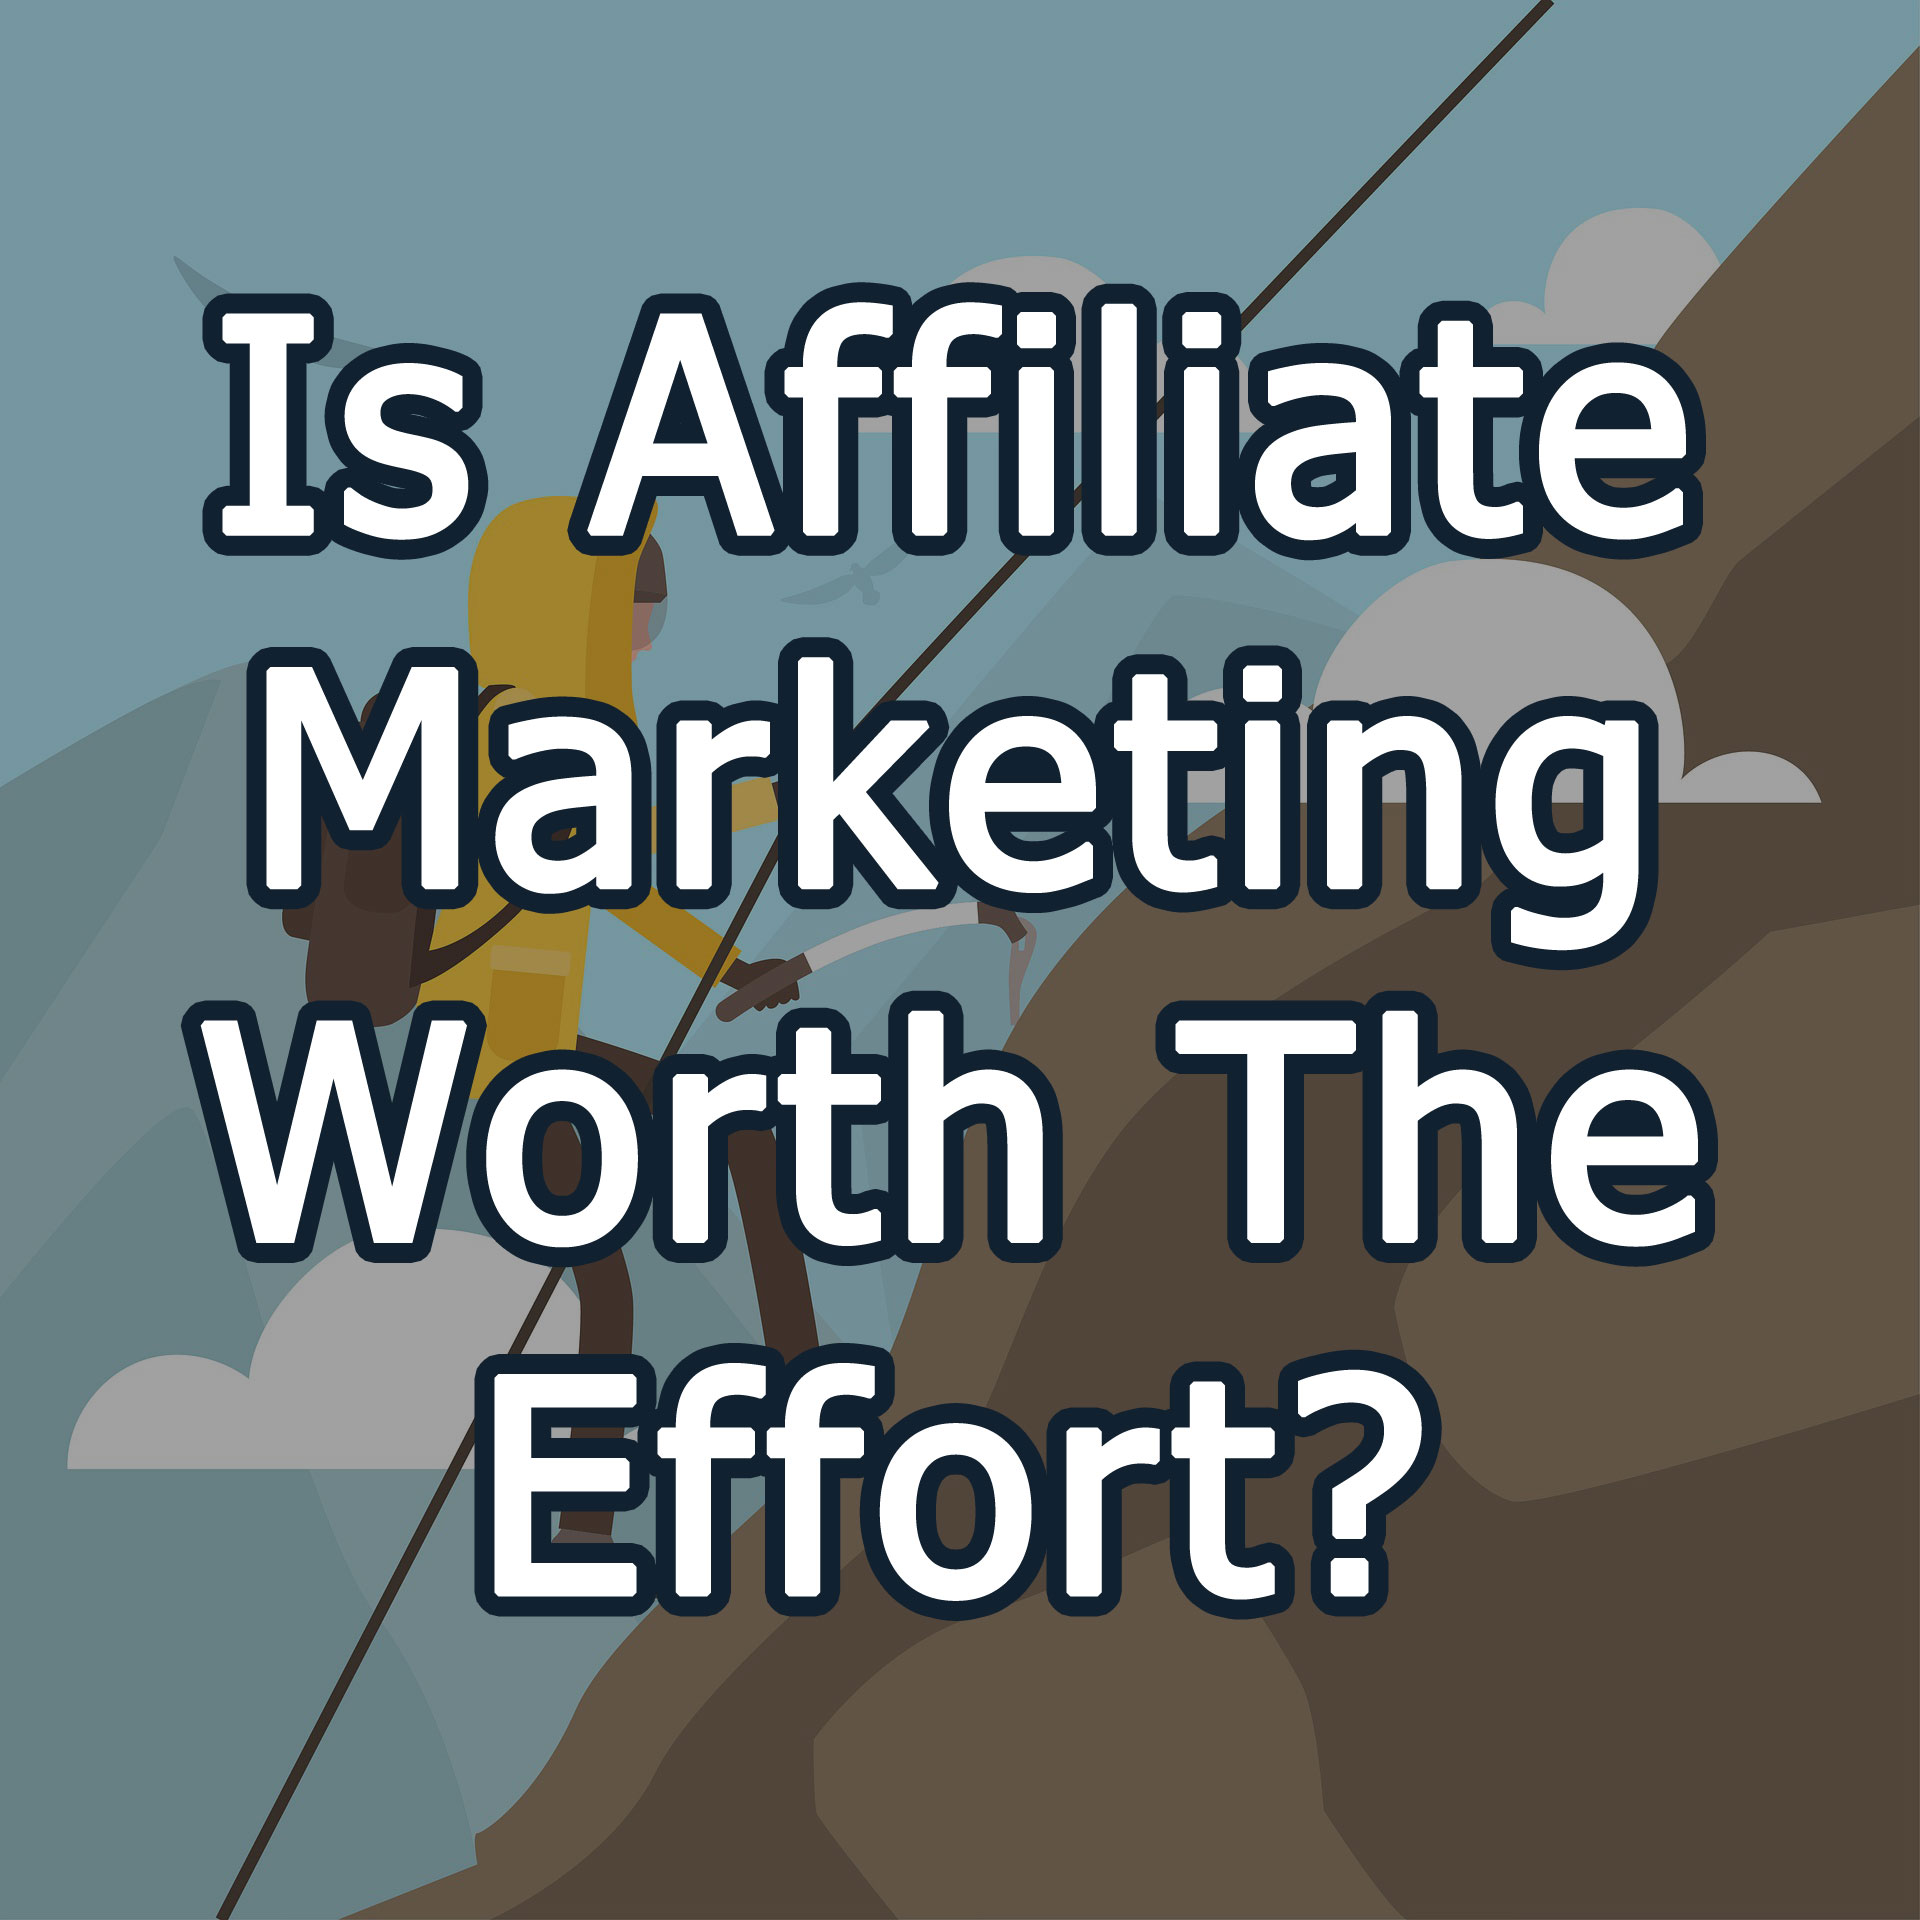 Is Affiliate Marketing Worth The Effort